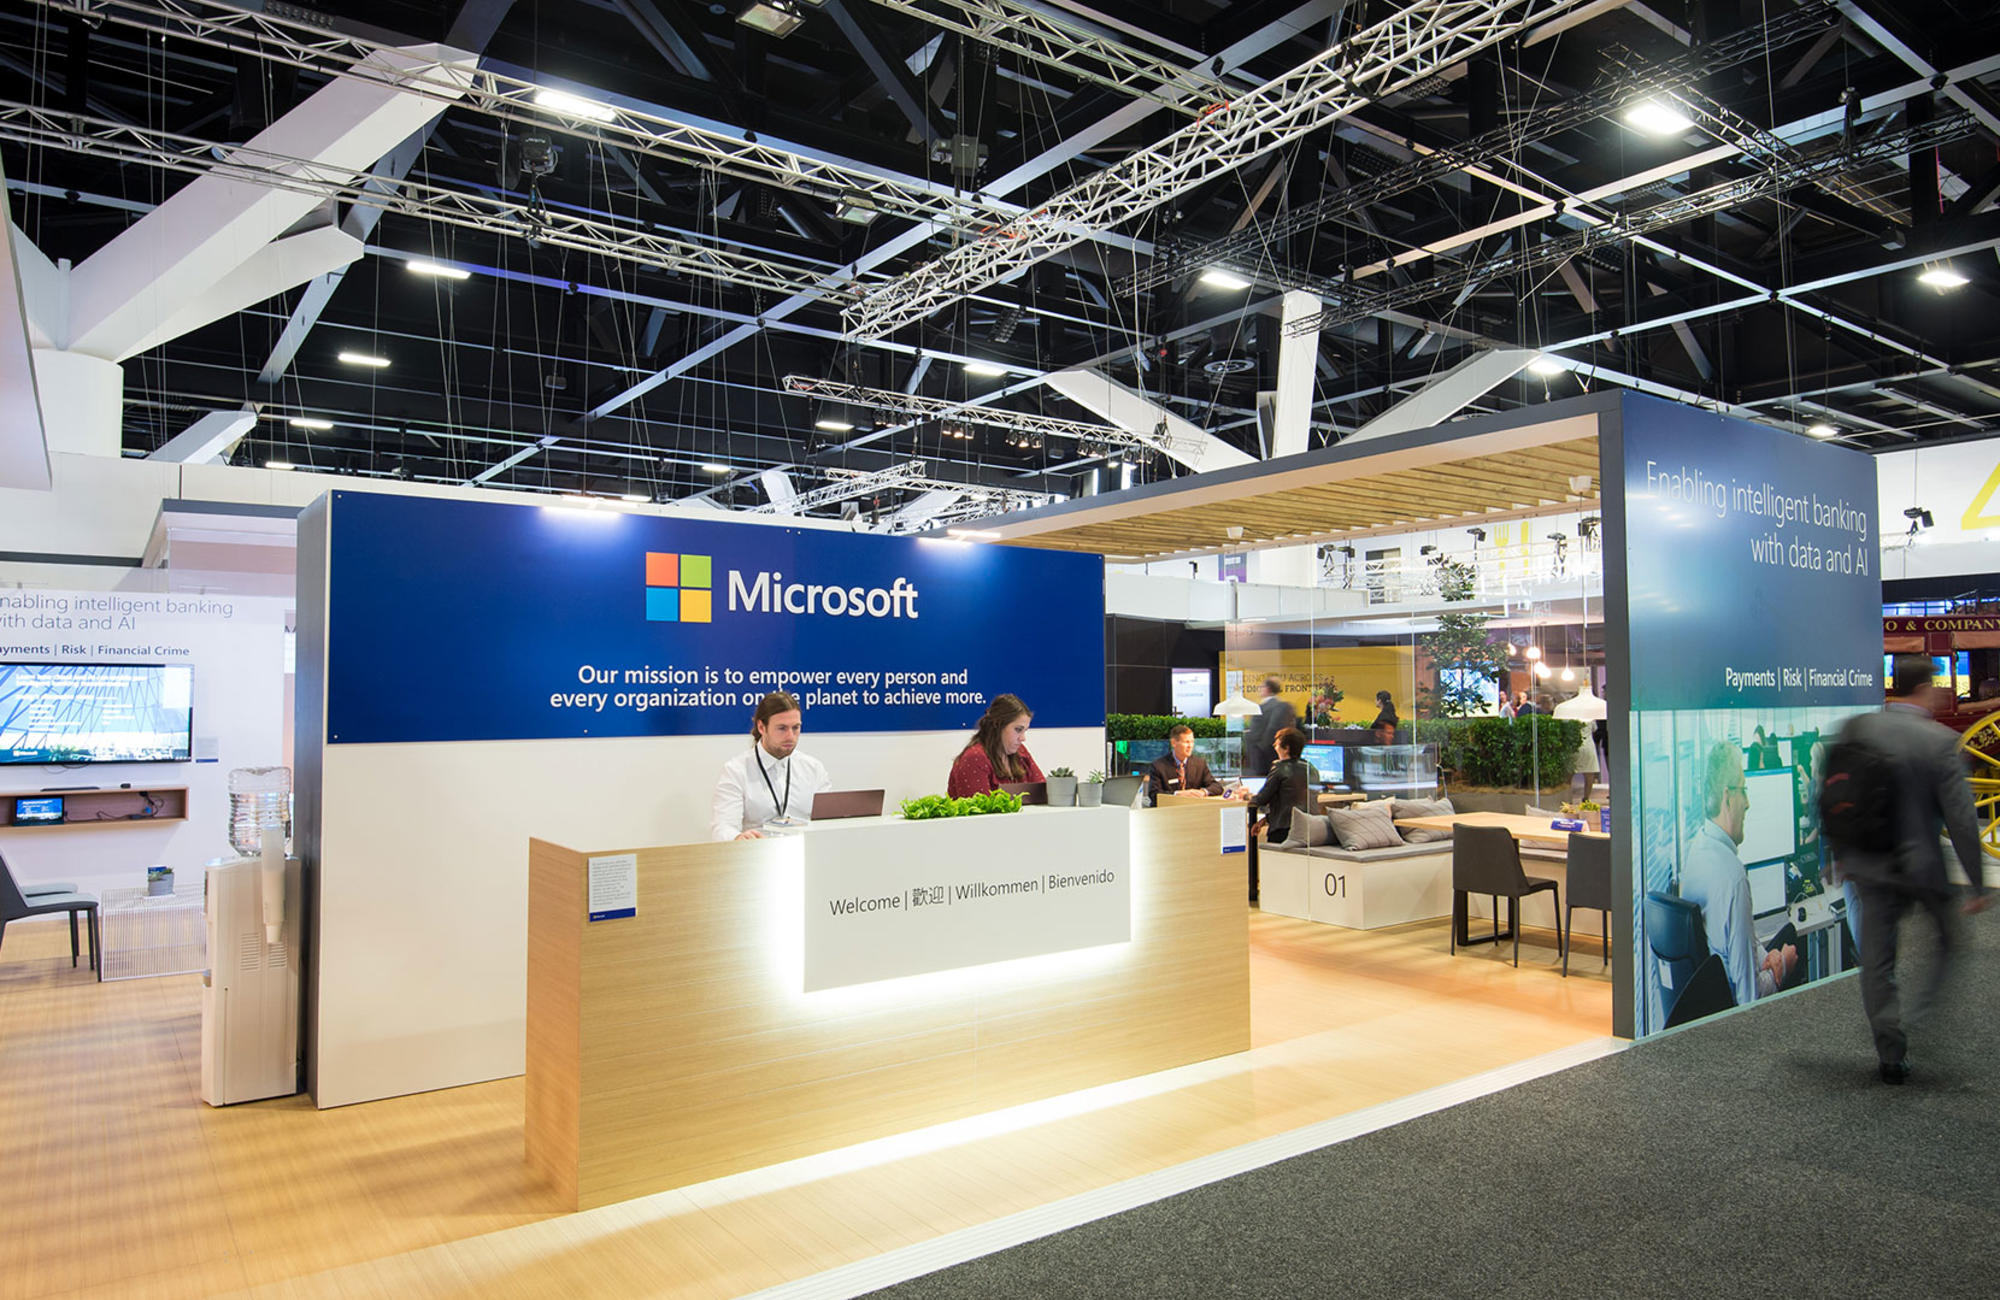 Modular Exhibition Stands Election : Custom exhibition stand design & builds harry the hirer